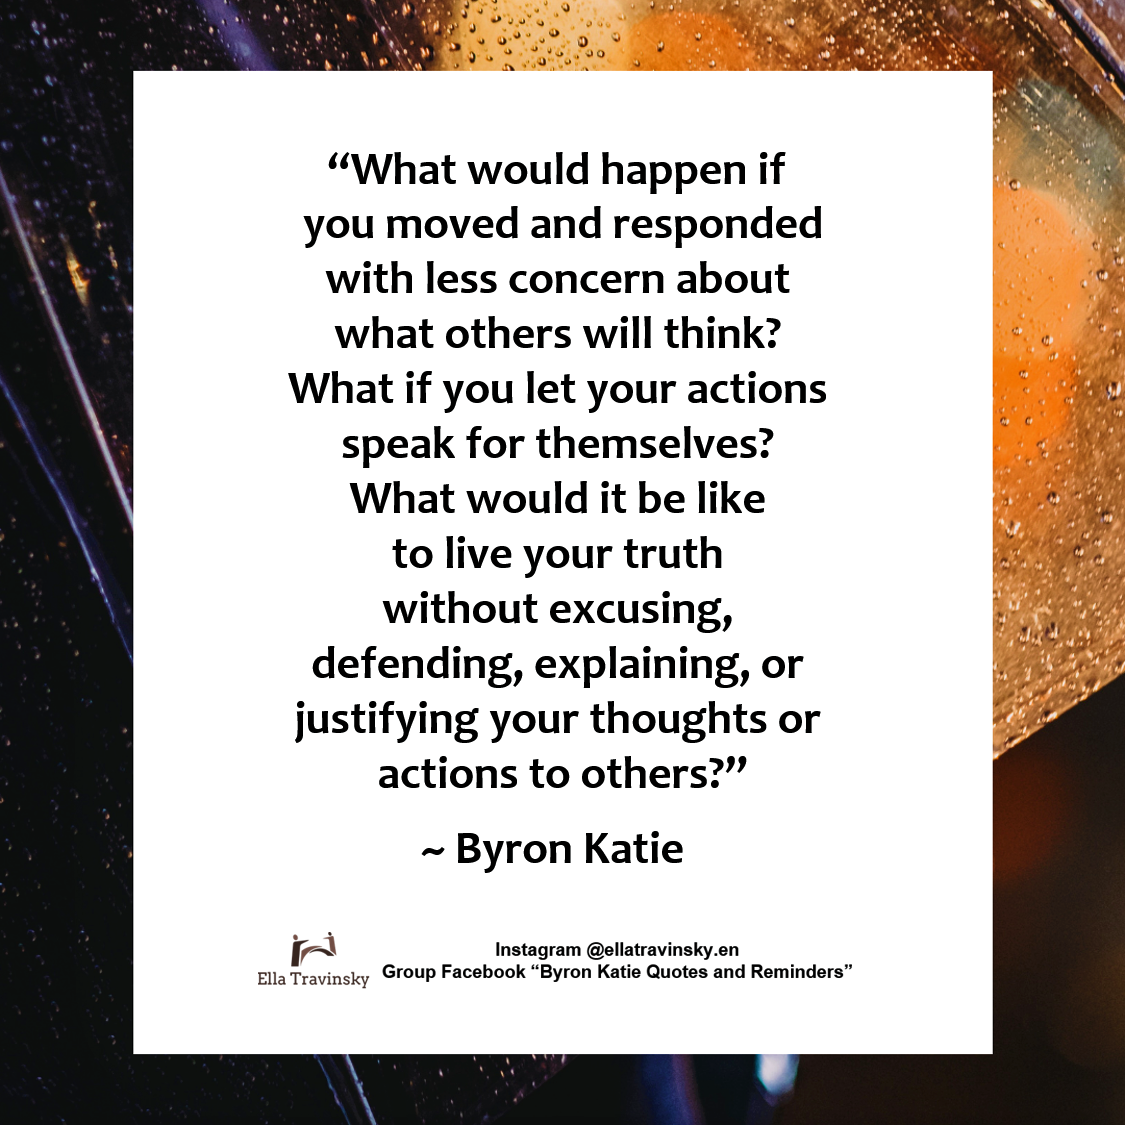 What would happen if you moved and responded with less ...